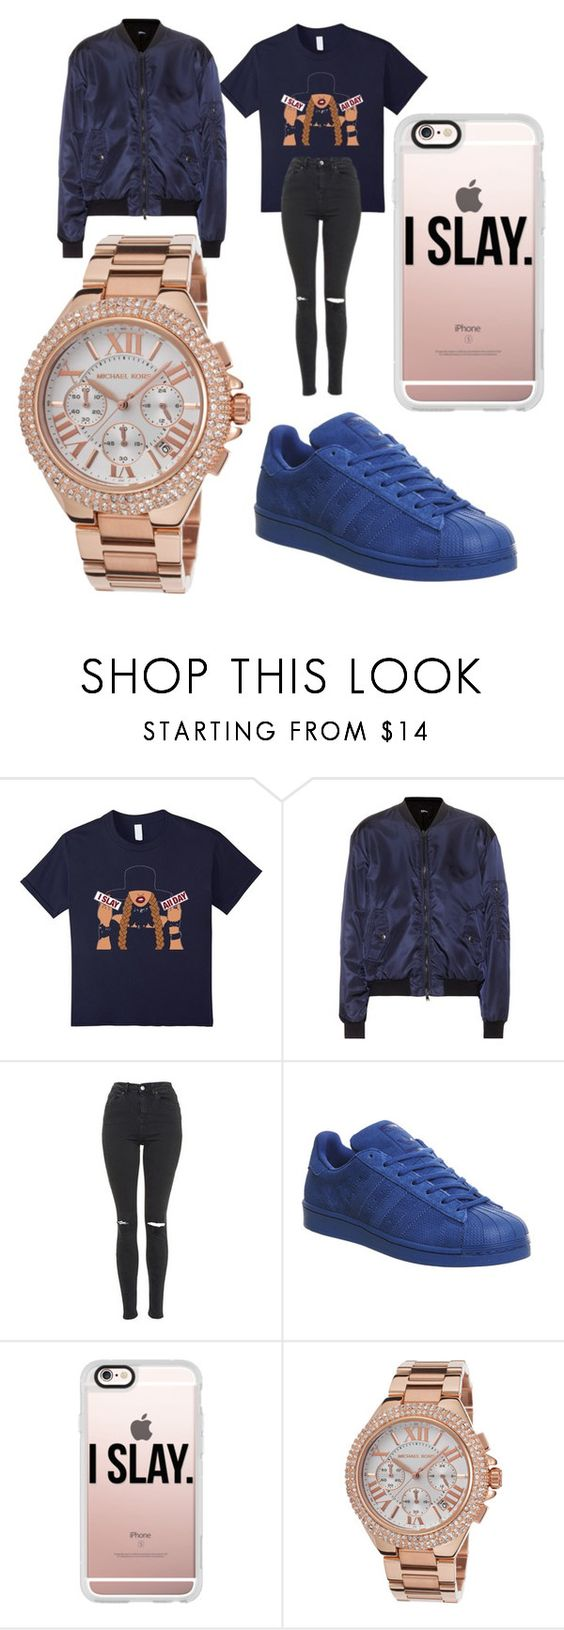 """I SLAY ALL DAY "" by leah3000 ❤ liked on Polyvore featuring Jil Sander Navy, Topshop, adidas, Casetify and Michael Kors"